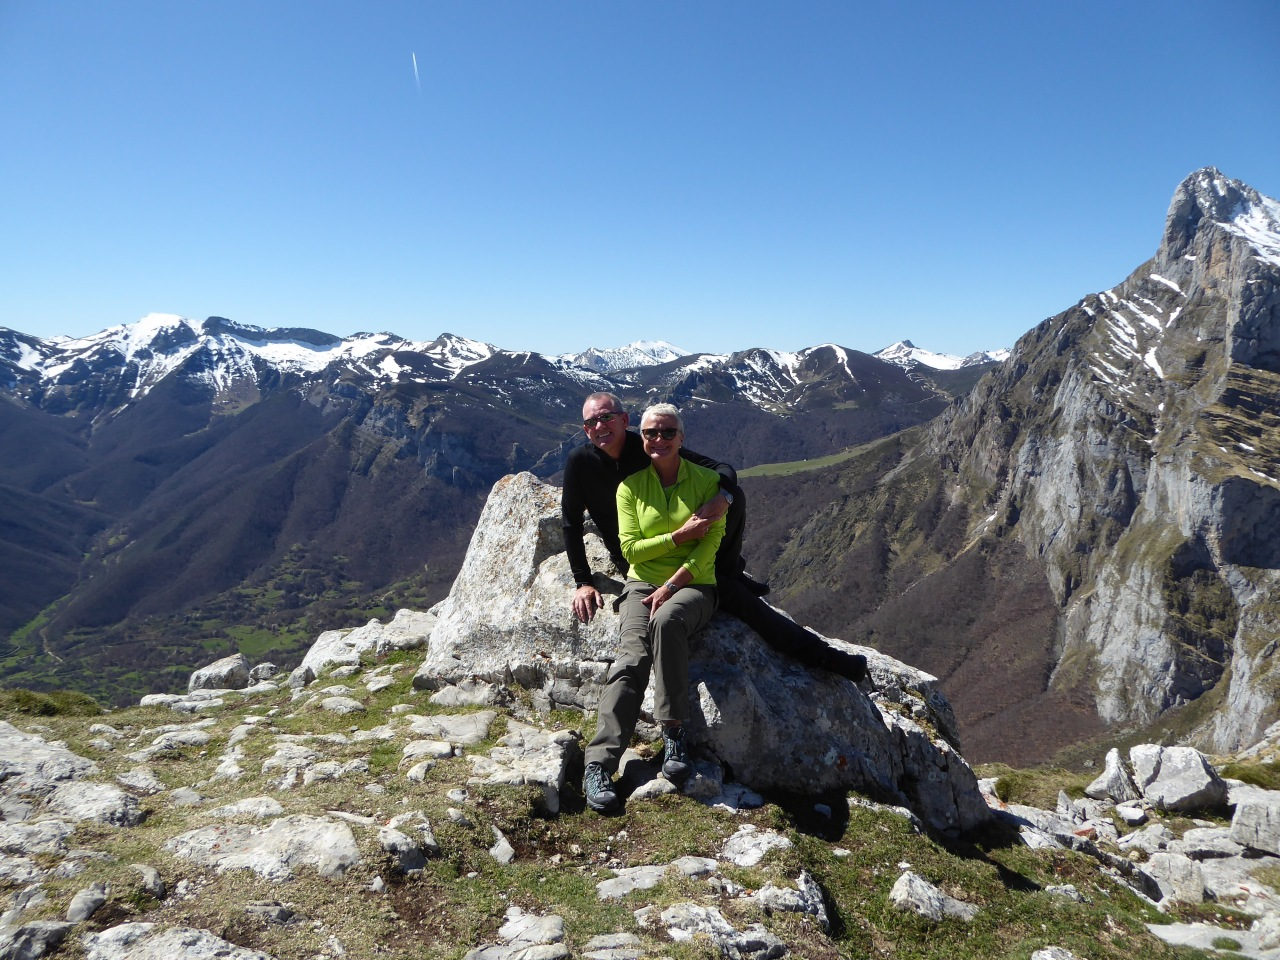 Our pick of pics from Picos de Europa